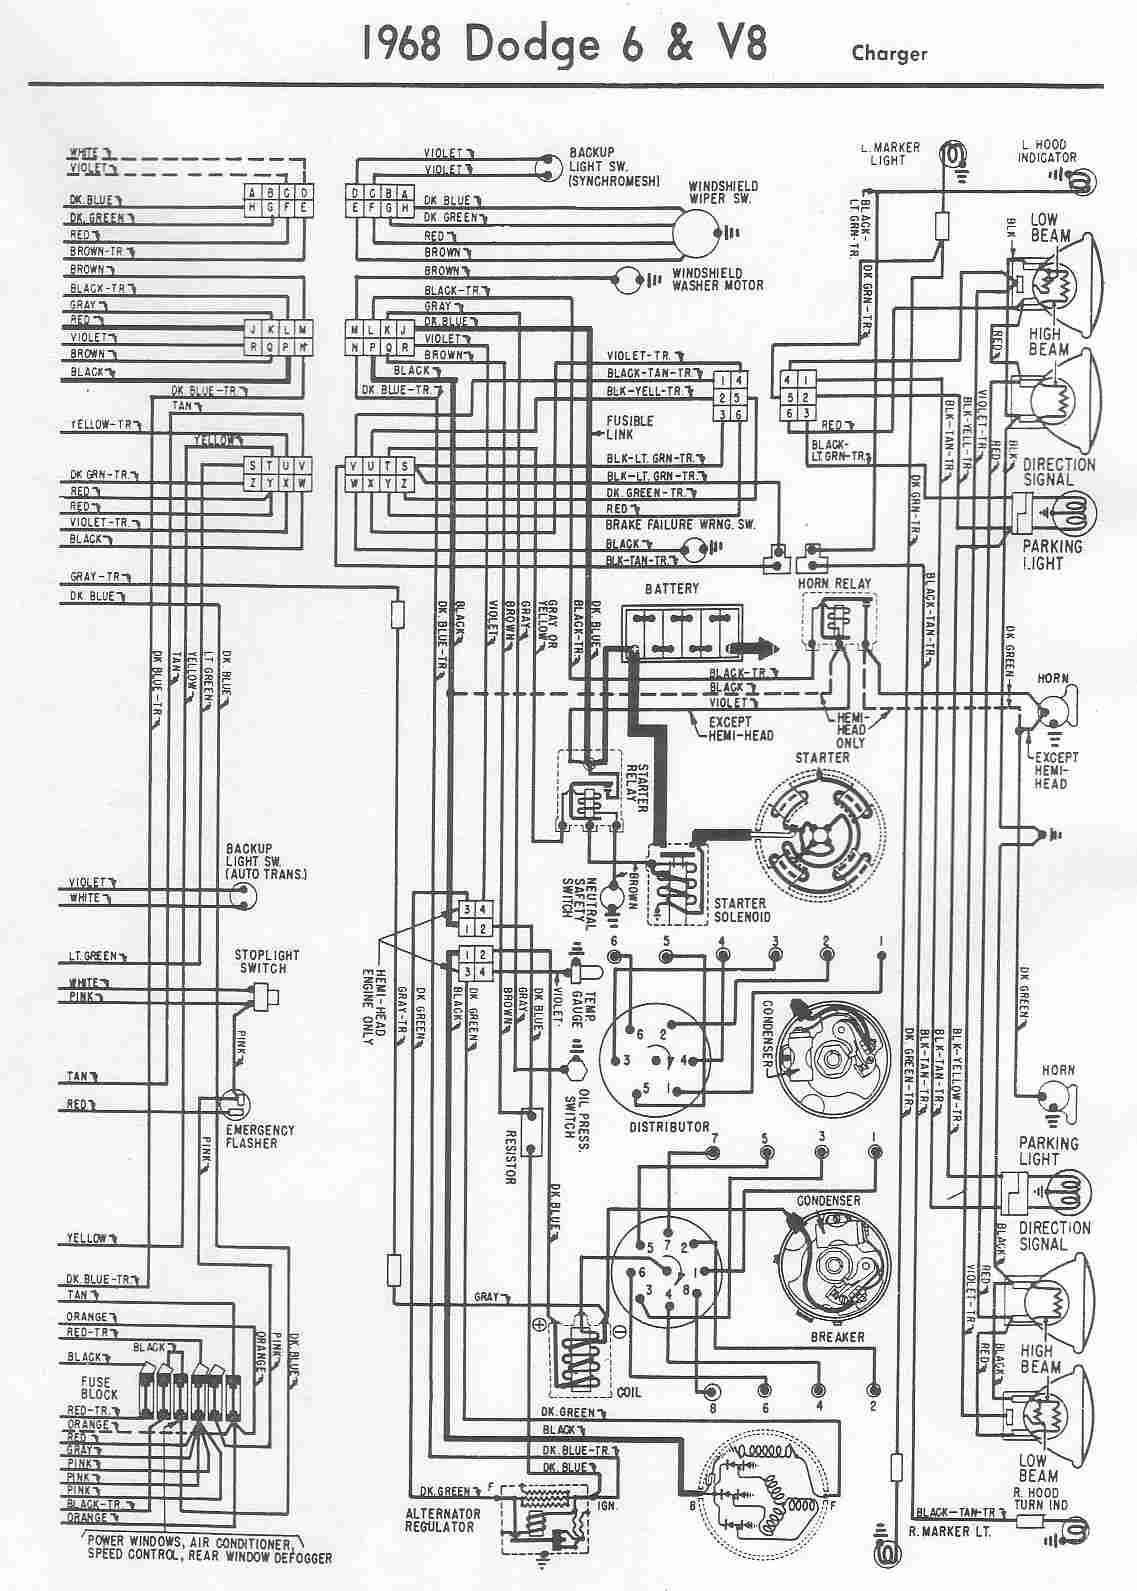 charger electrical wiring diagram of 1968 dodge 6 and v8?t=1508404771 dodge car manuals, wiring diagrams pdf & fault codes Dodge Coronet 500 at creativeand.co